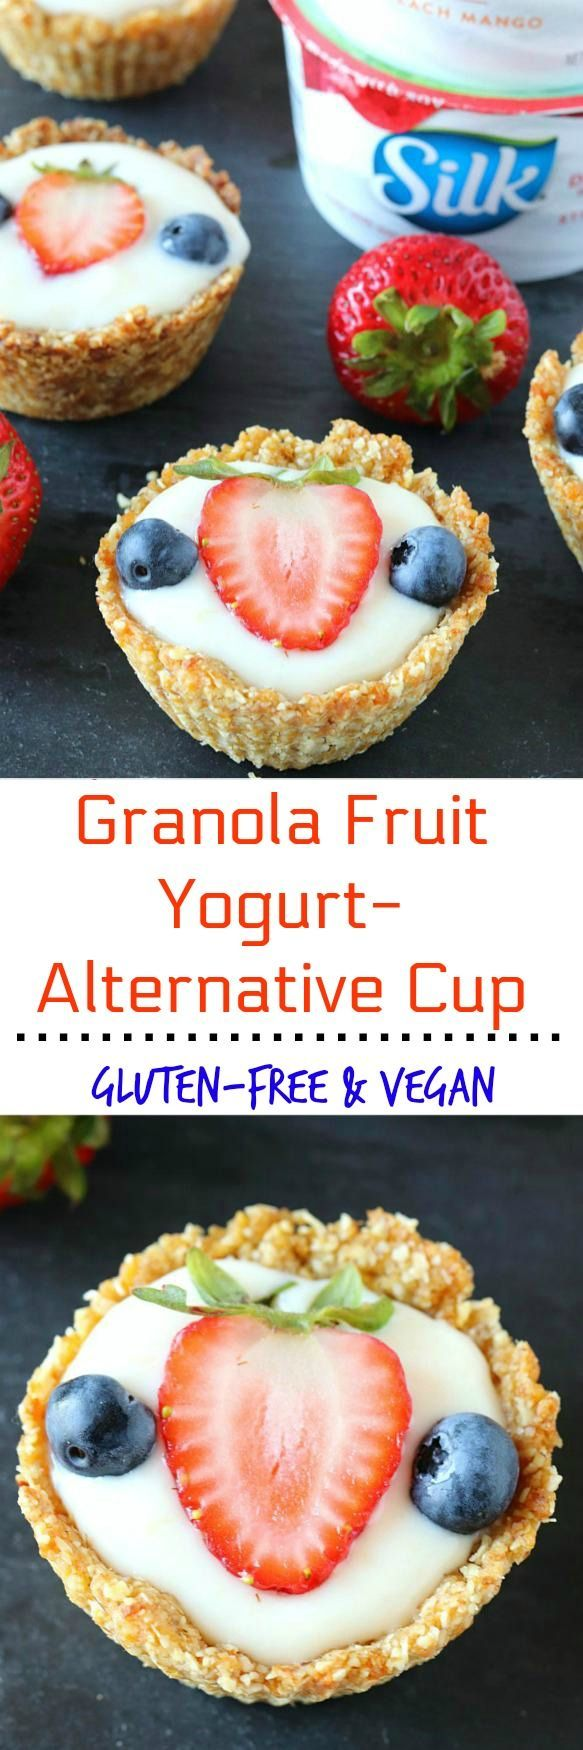 These wholesome and delicious Granola Fruit Yogurt Cup are made with 7 simple ingredients and is the perfectback-to-school recipe.Plus, they are gluten free and vegan!!